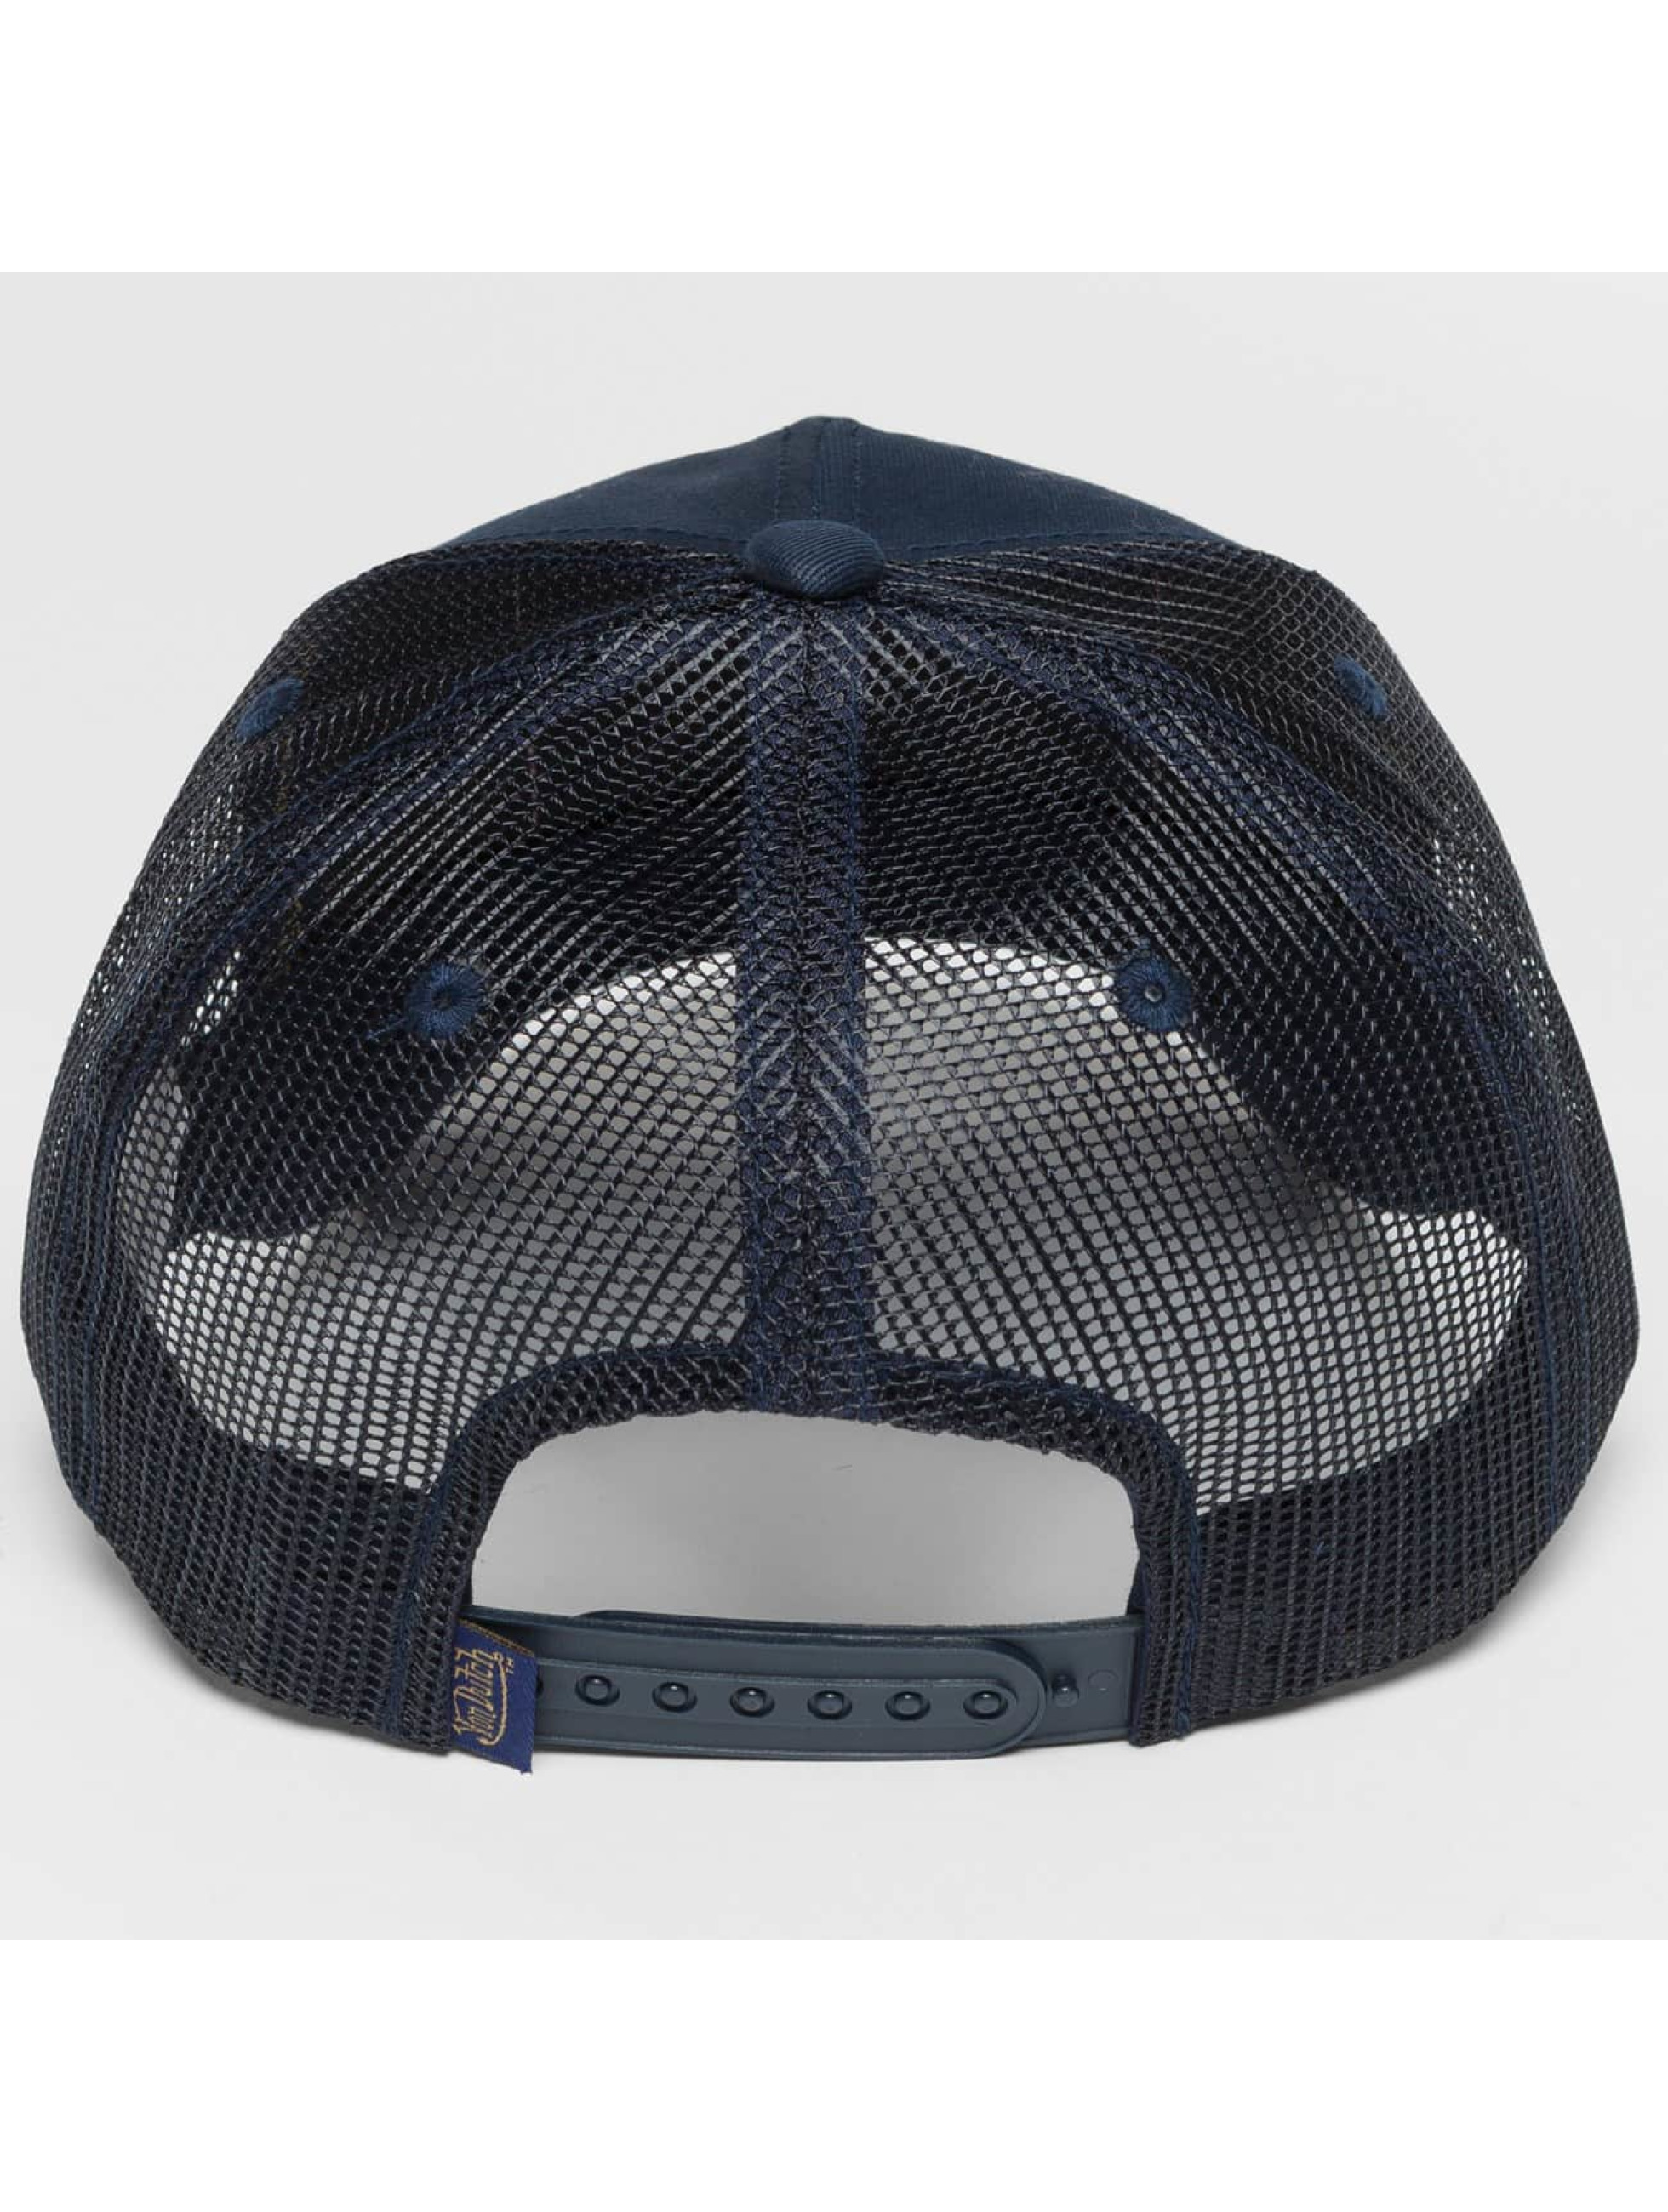 Von Dutch Casquette Trucker mesh Tiger bleu